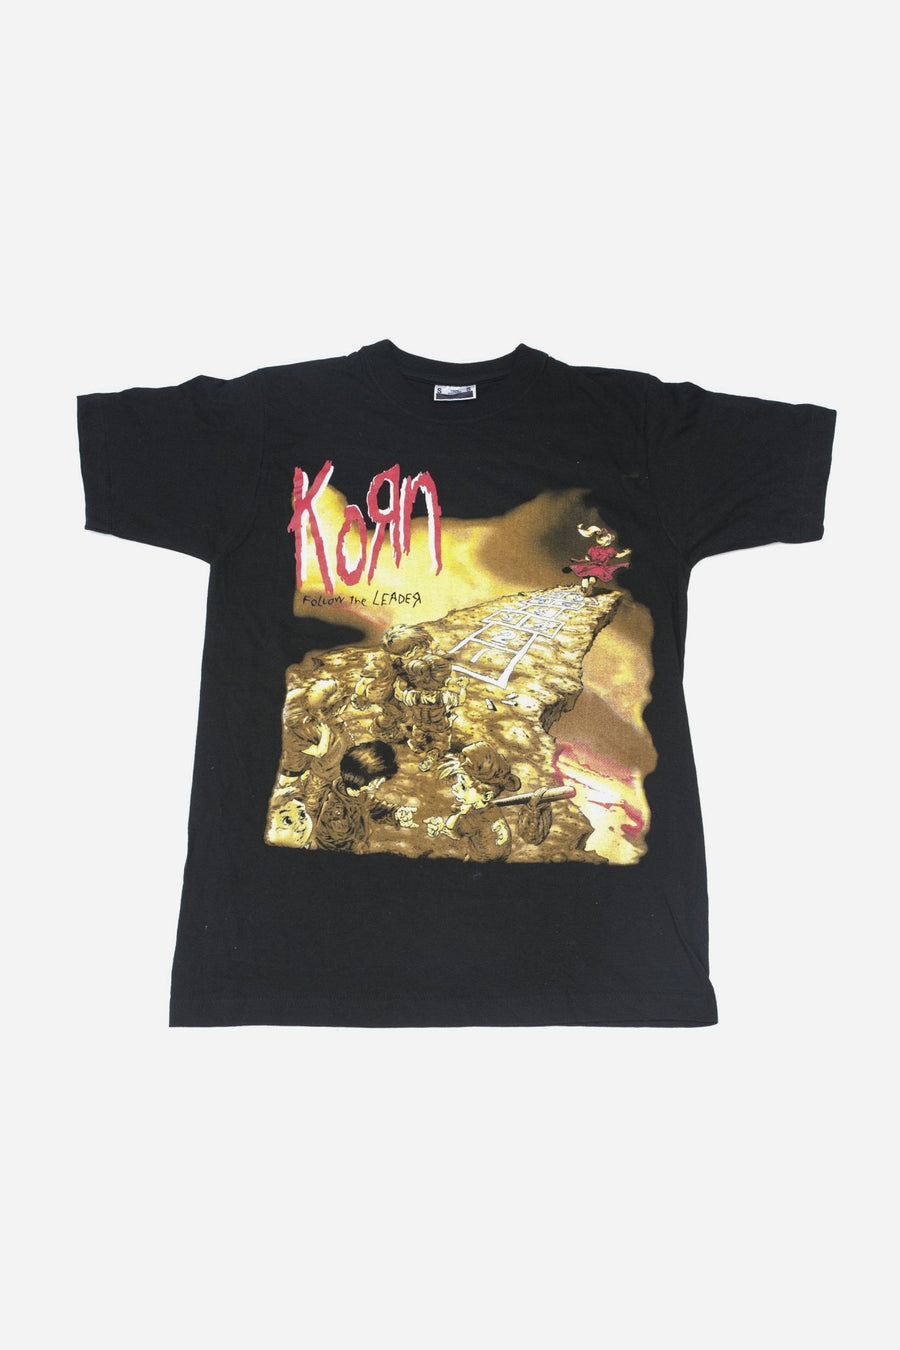 T-Shirt Korn Follow The Leader - WASTED PARIS